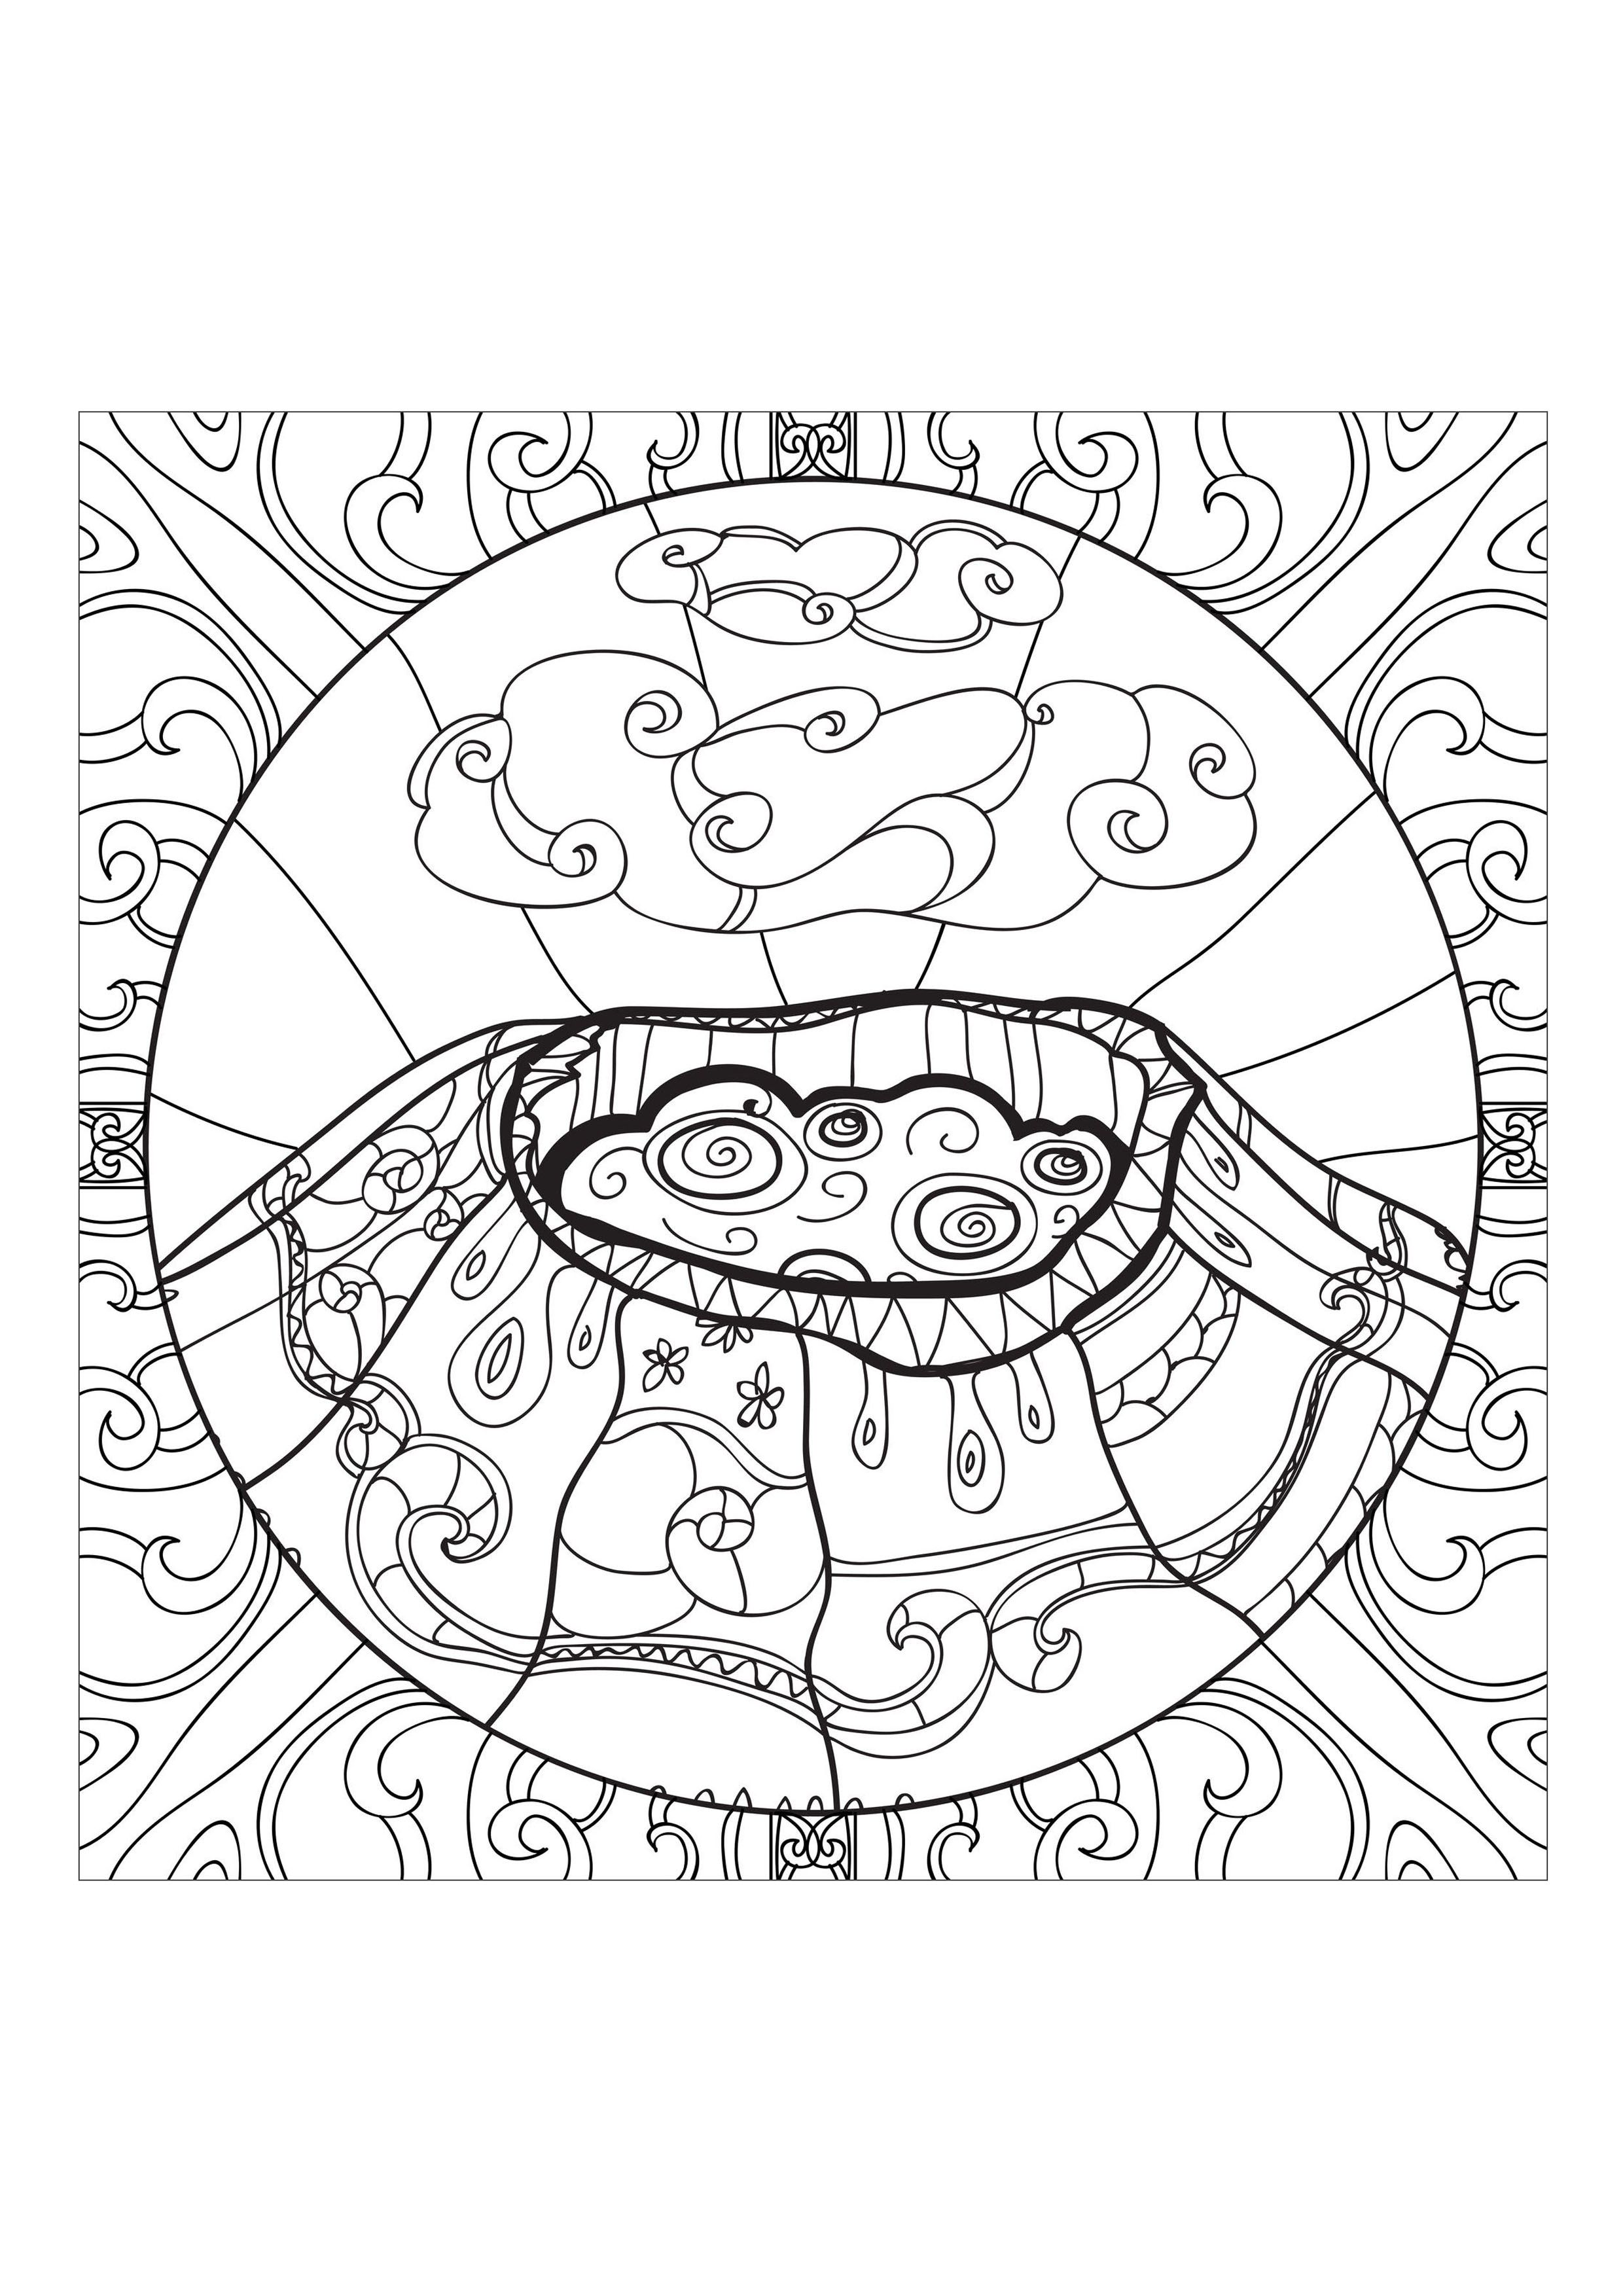 coloring-page-adults-volcano-1, From the gallery : Zen & Anti Stress ...